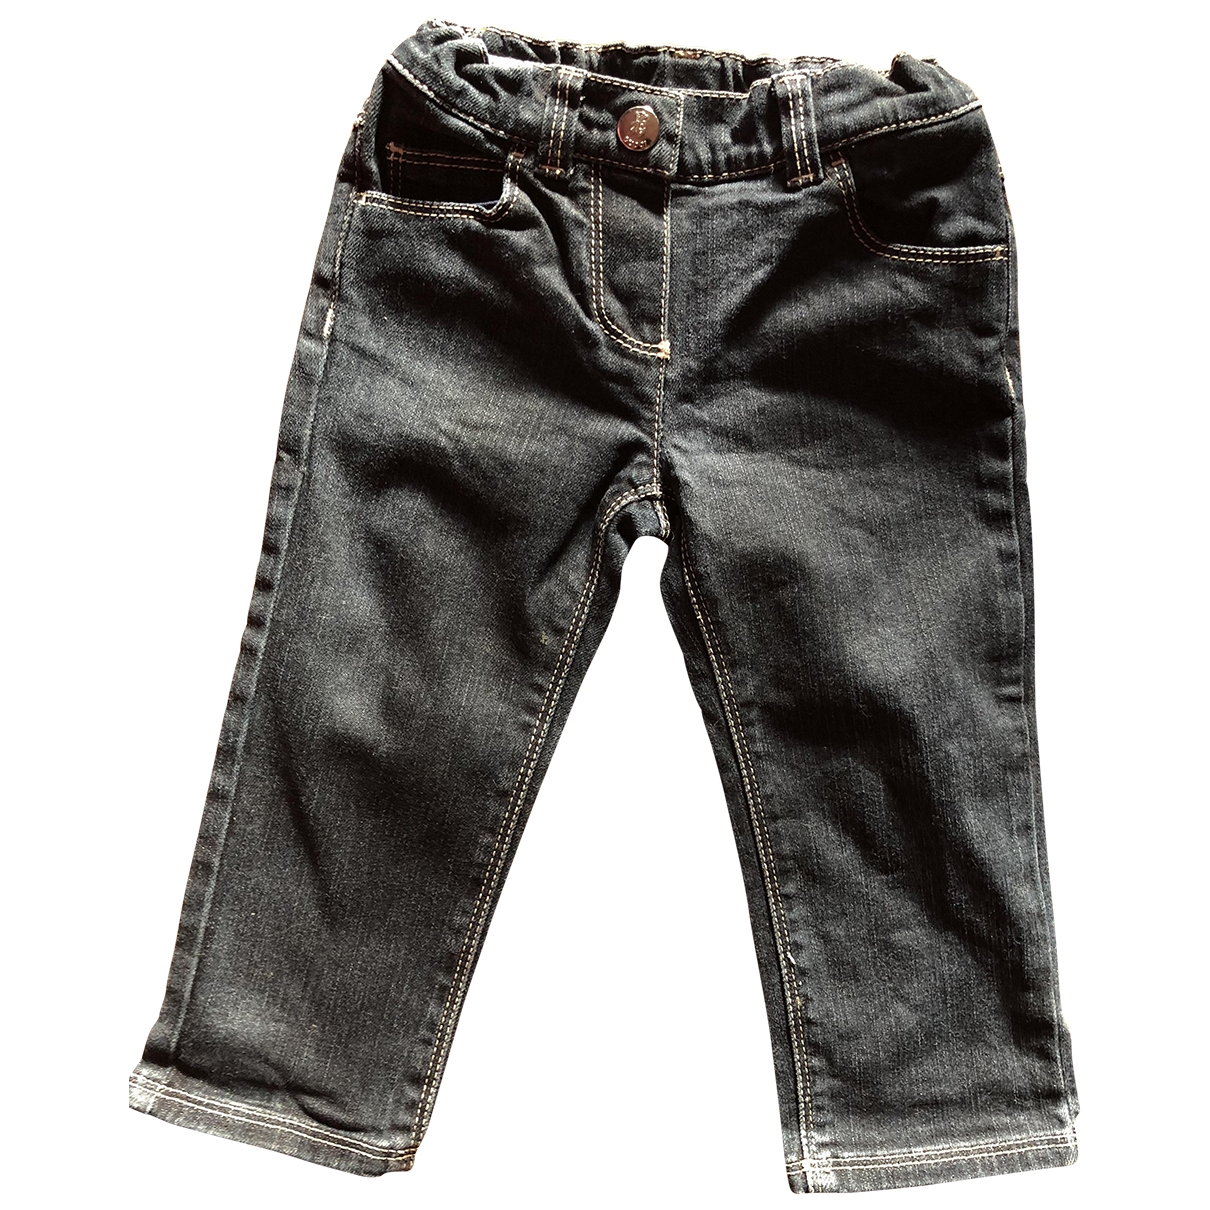 Gucci \N Black Denim - Jeans Trousers for Kids 18 months - up to 81cm FR